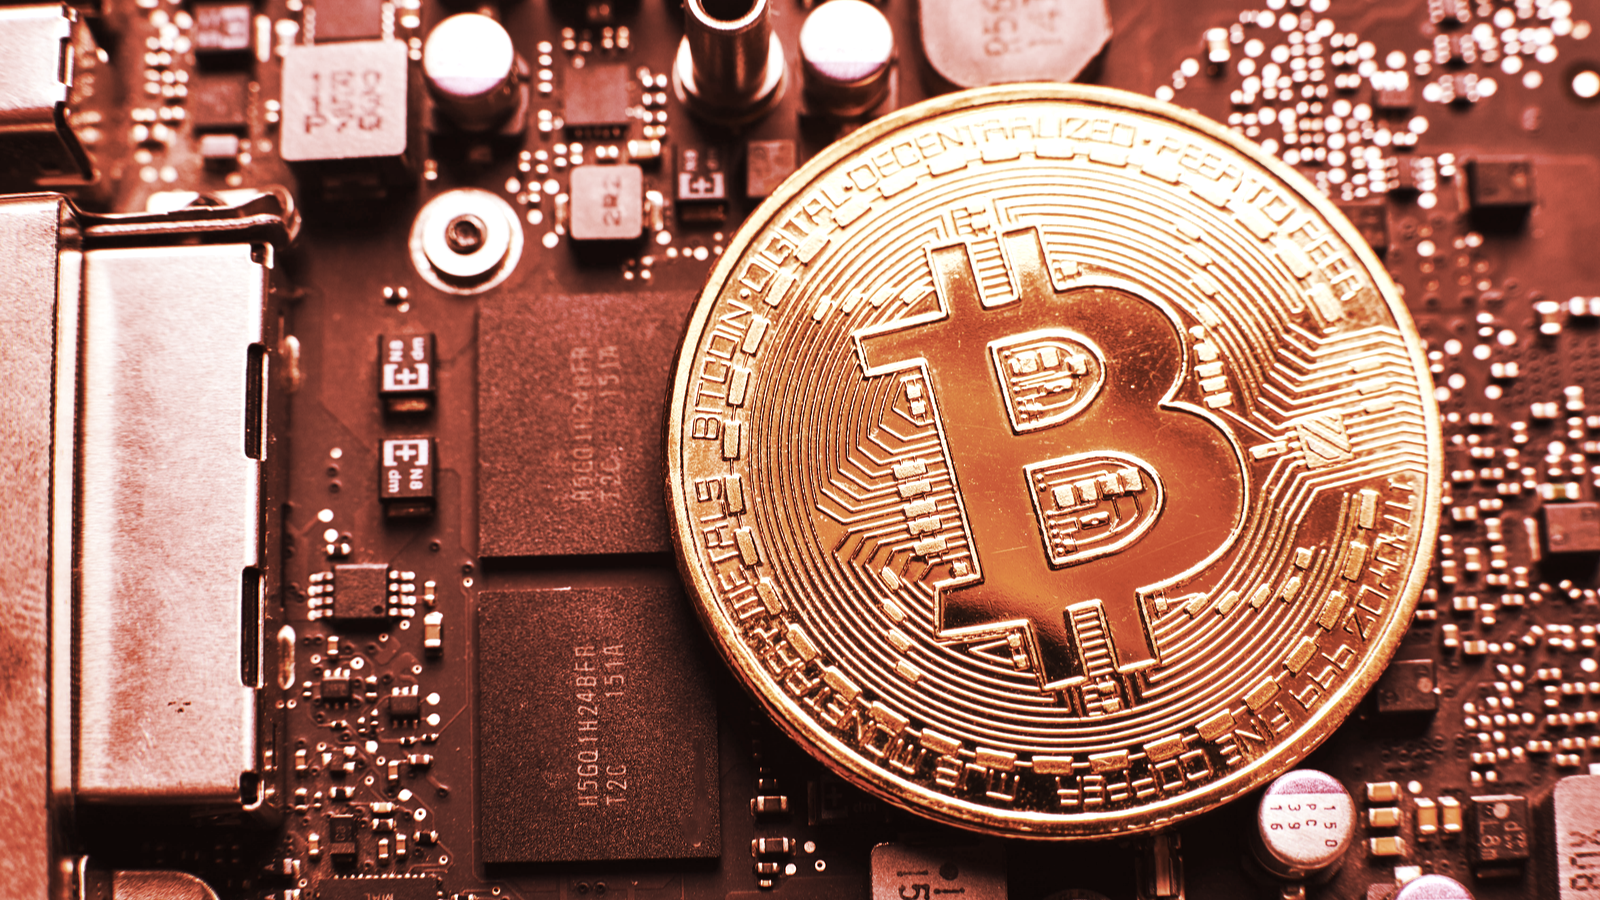 China's Ban Sparks Fears of Dirty Bitcoin Mining Practices